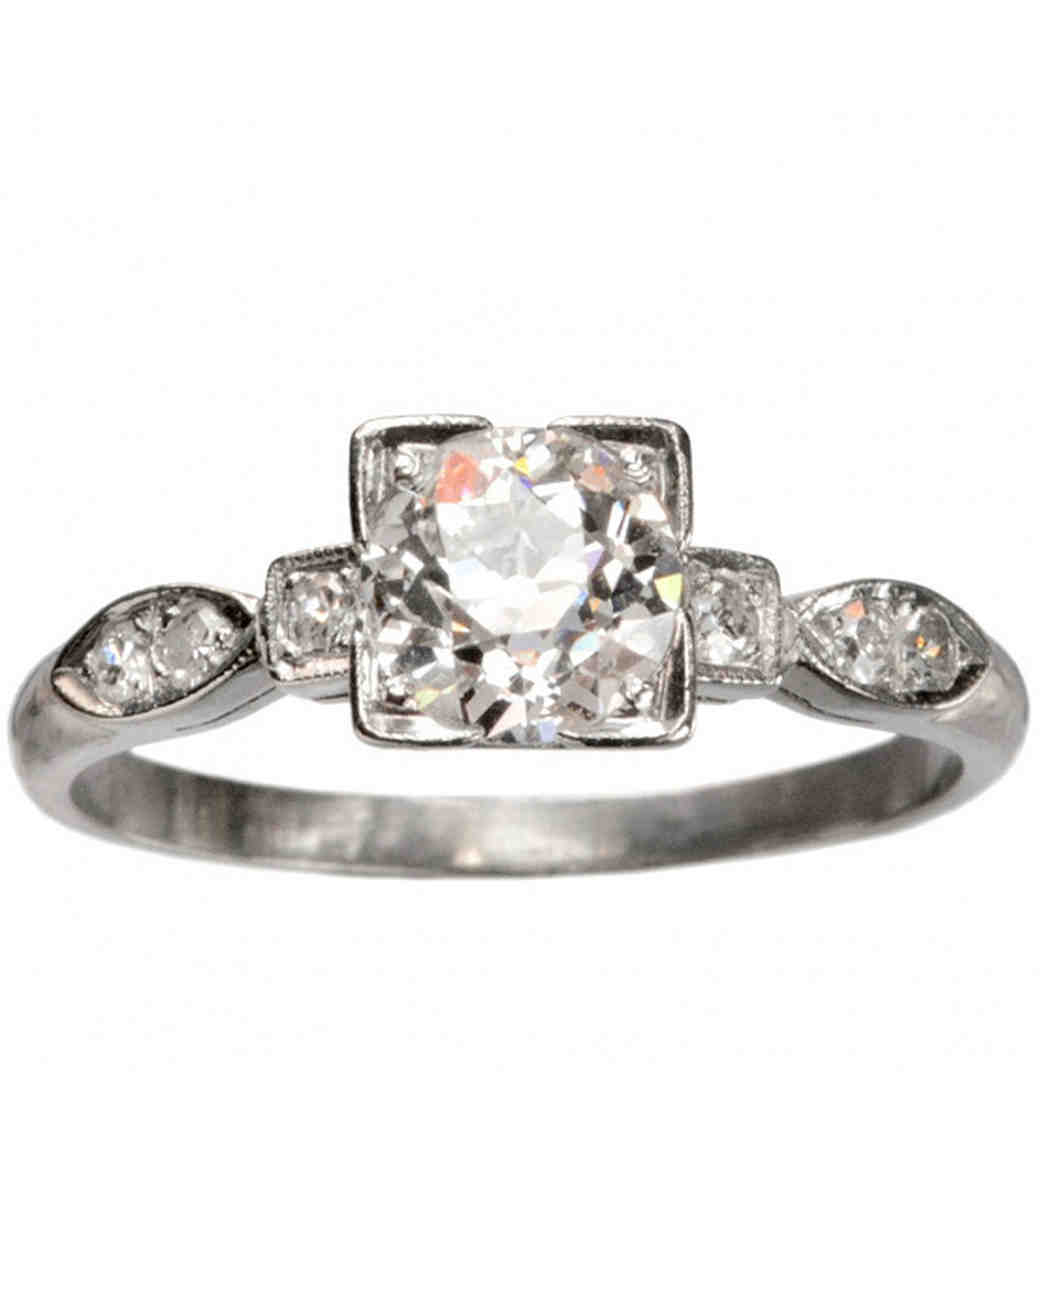 banners our engagementrings of bridal carefully deco art time to heirloom standards crafted will test co the stand nouveau engagement quality eshop rings gabriel